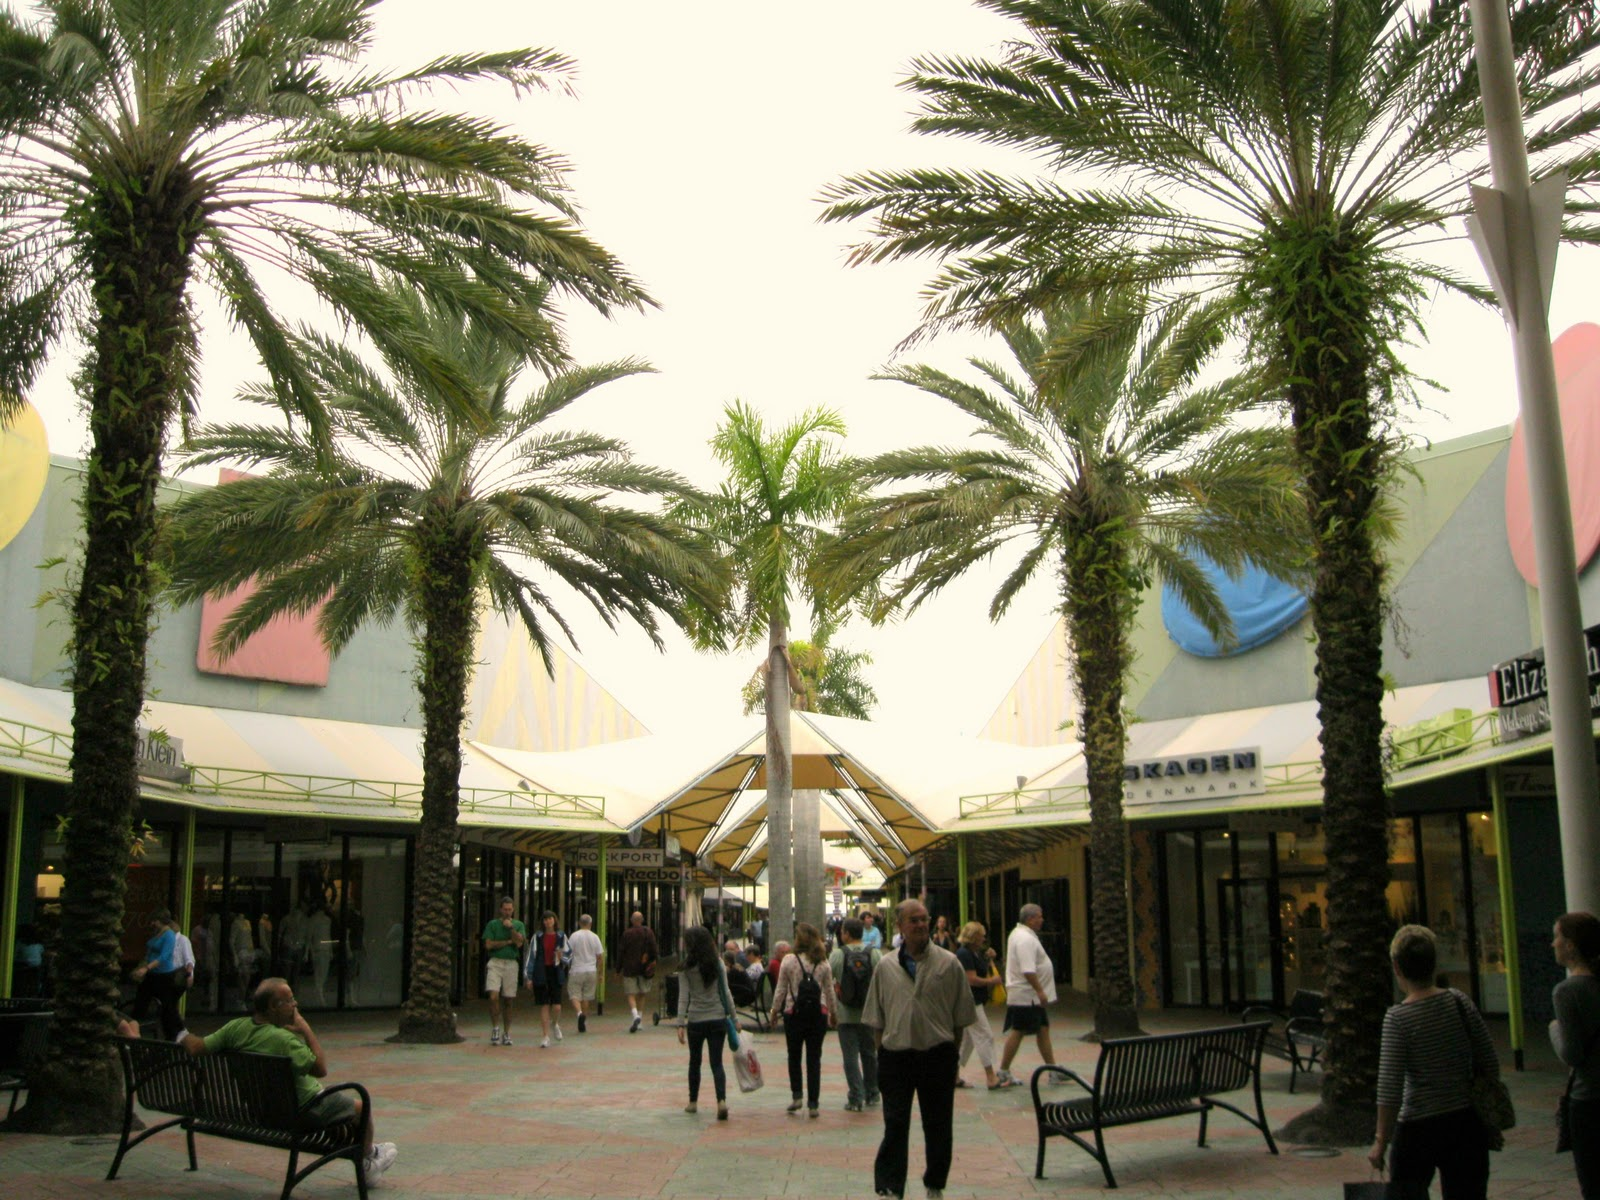 Florida Free Amp Frugal Sawgrass Mills Outlet Mall Sunrise